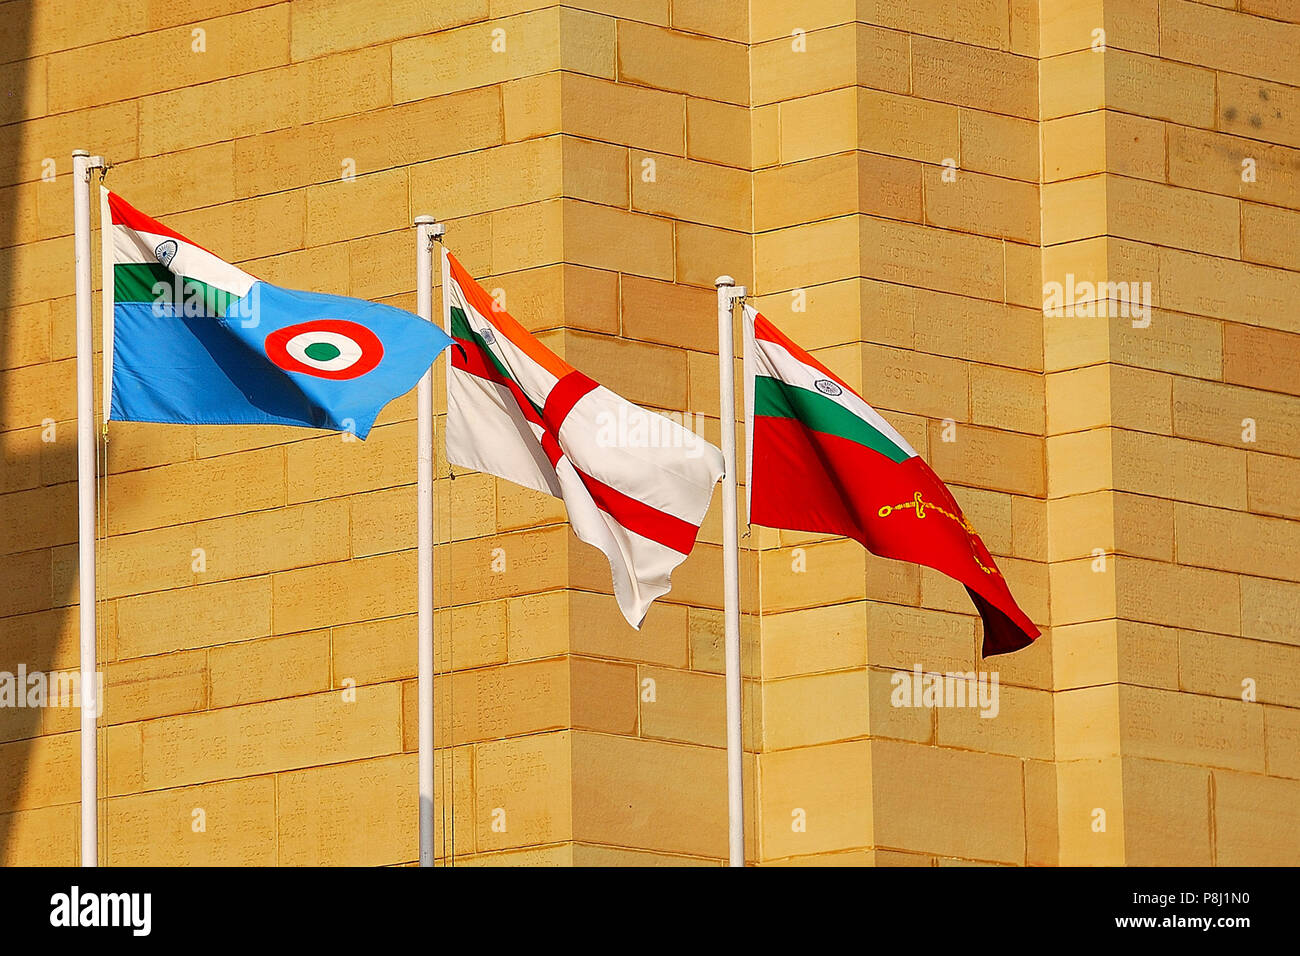 Flags of the three Armed Forces of India, India Gate, New Delhi, India Stock Photo